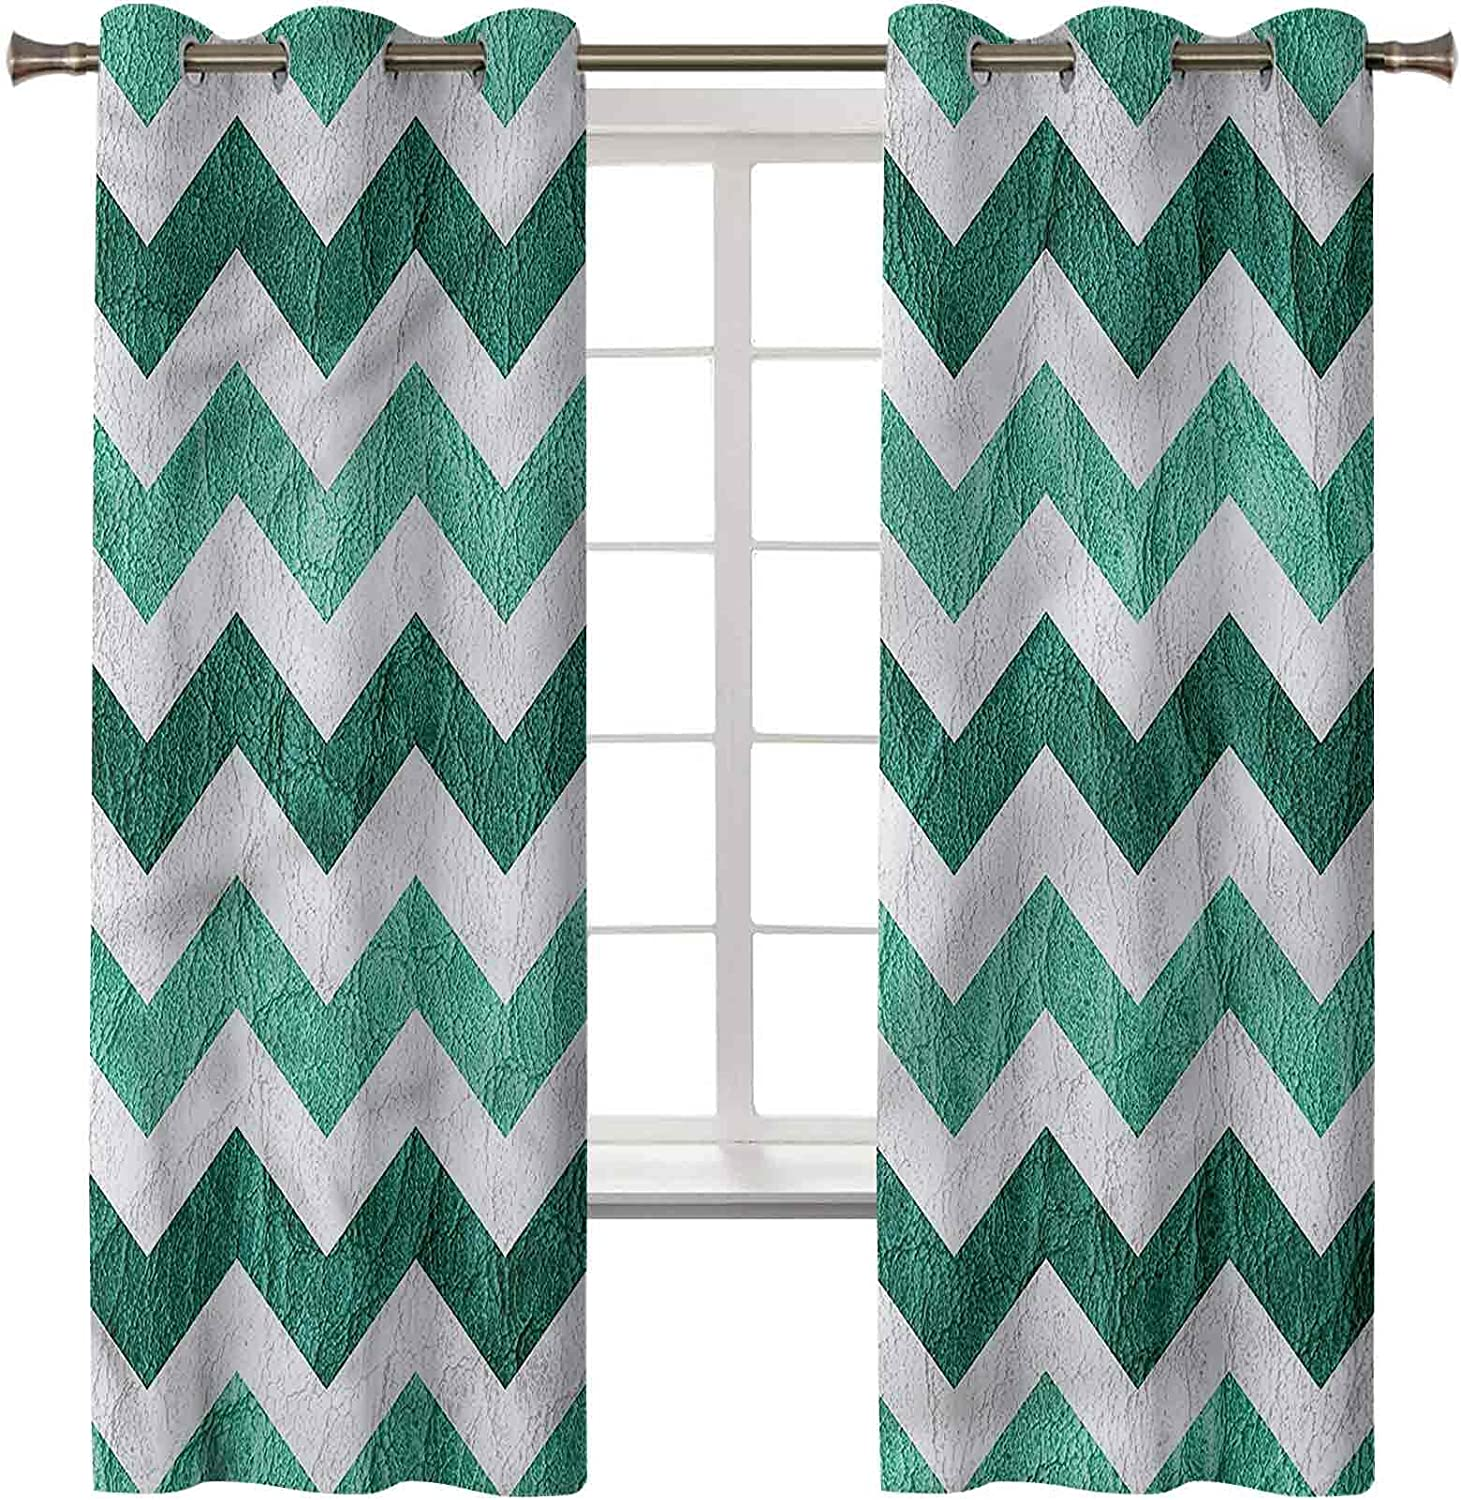 Modern Blackout Curtains for Bedroom Set Our shop Manufacturer OFFicial shop OFFers the best service of x Panels In 42 2 84